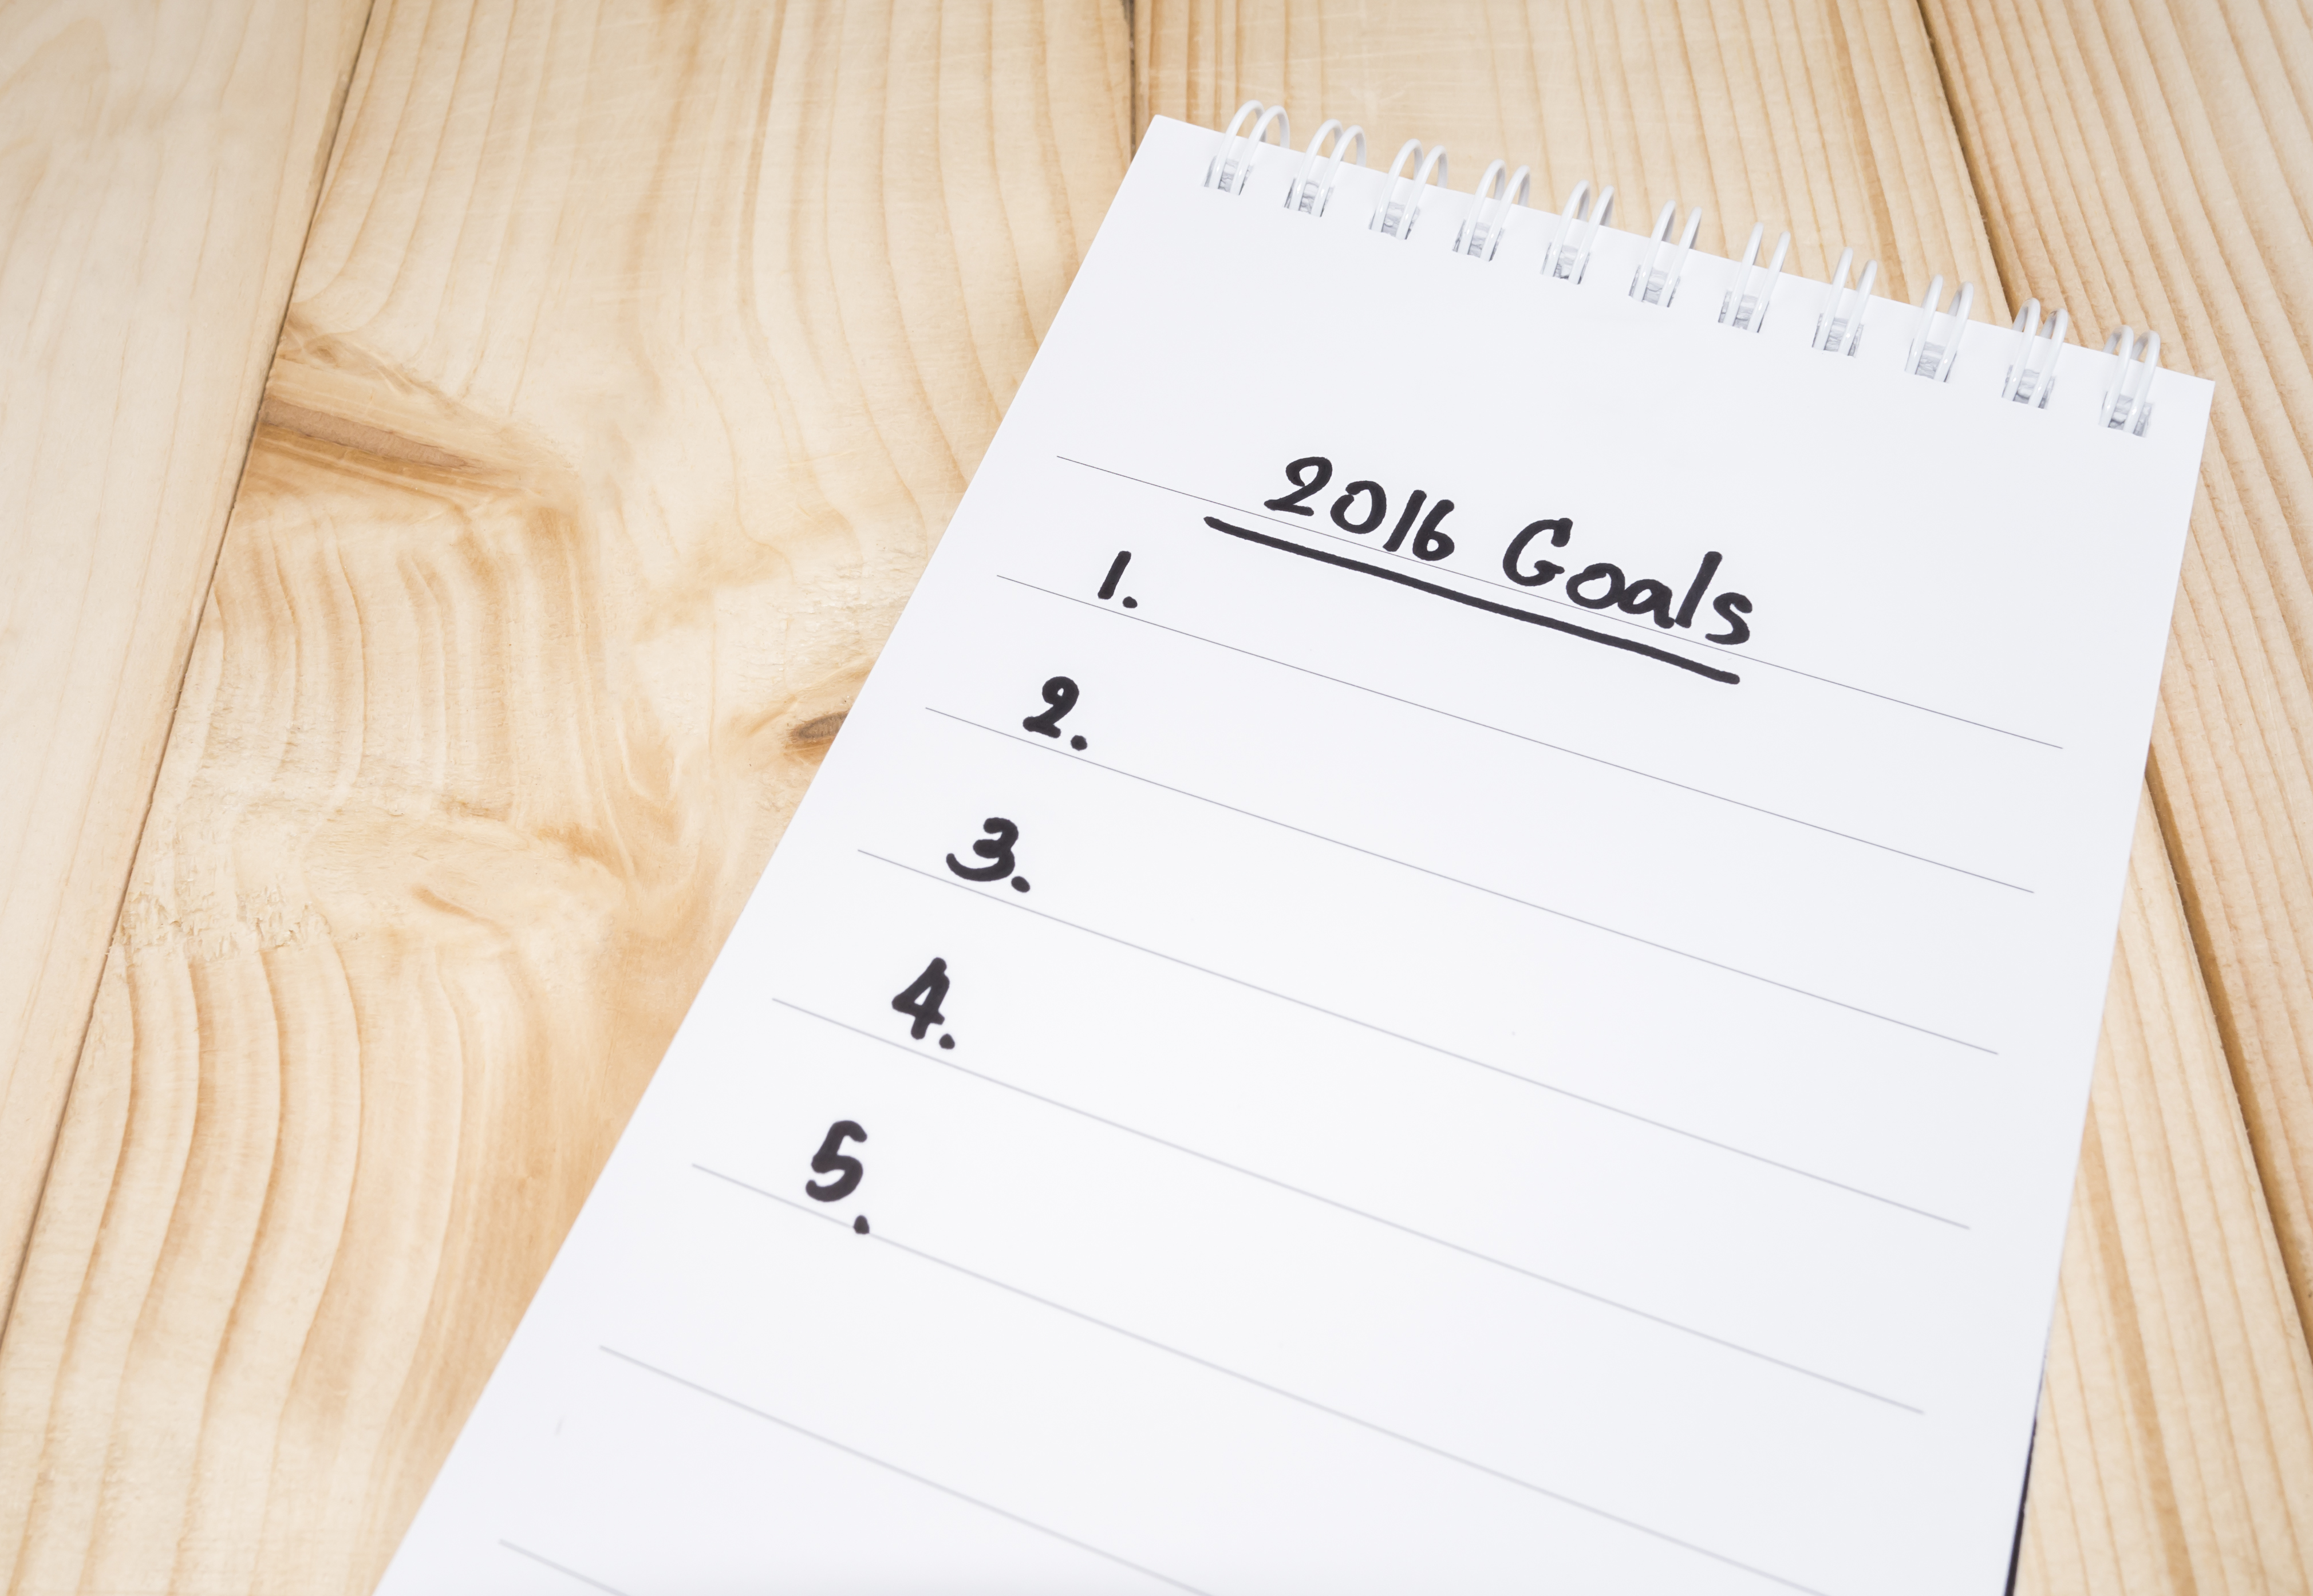 2016 Goals in notebook on wood background (Business Concept)